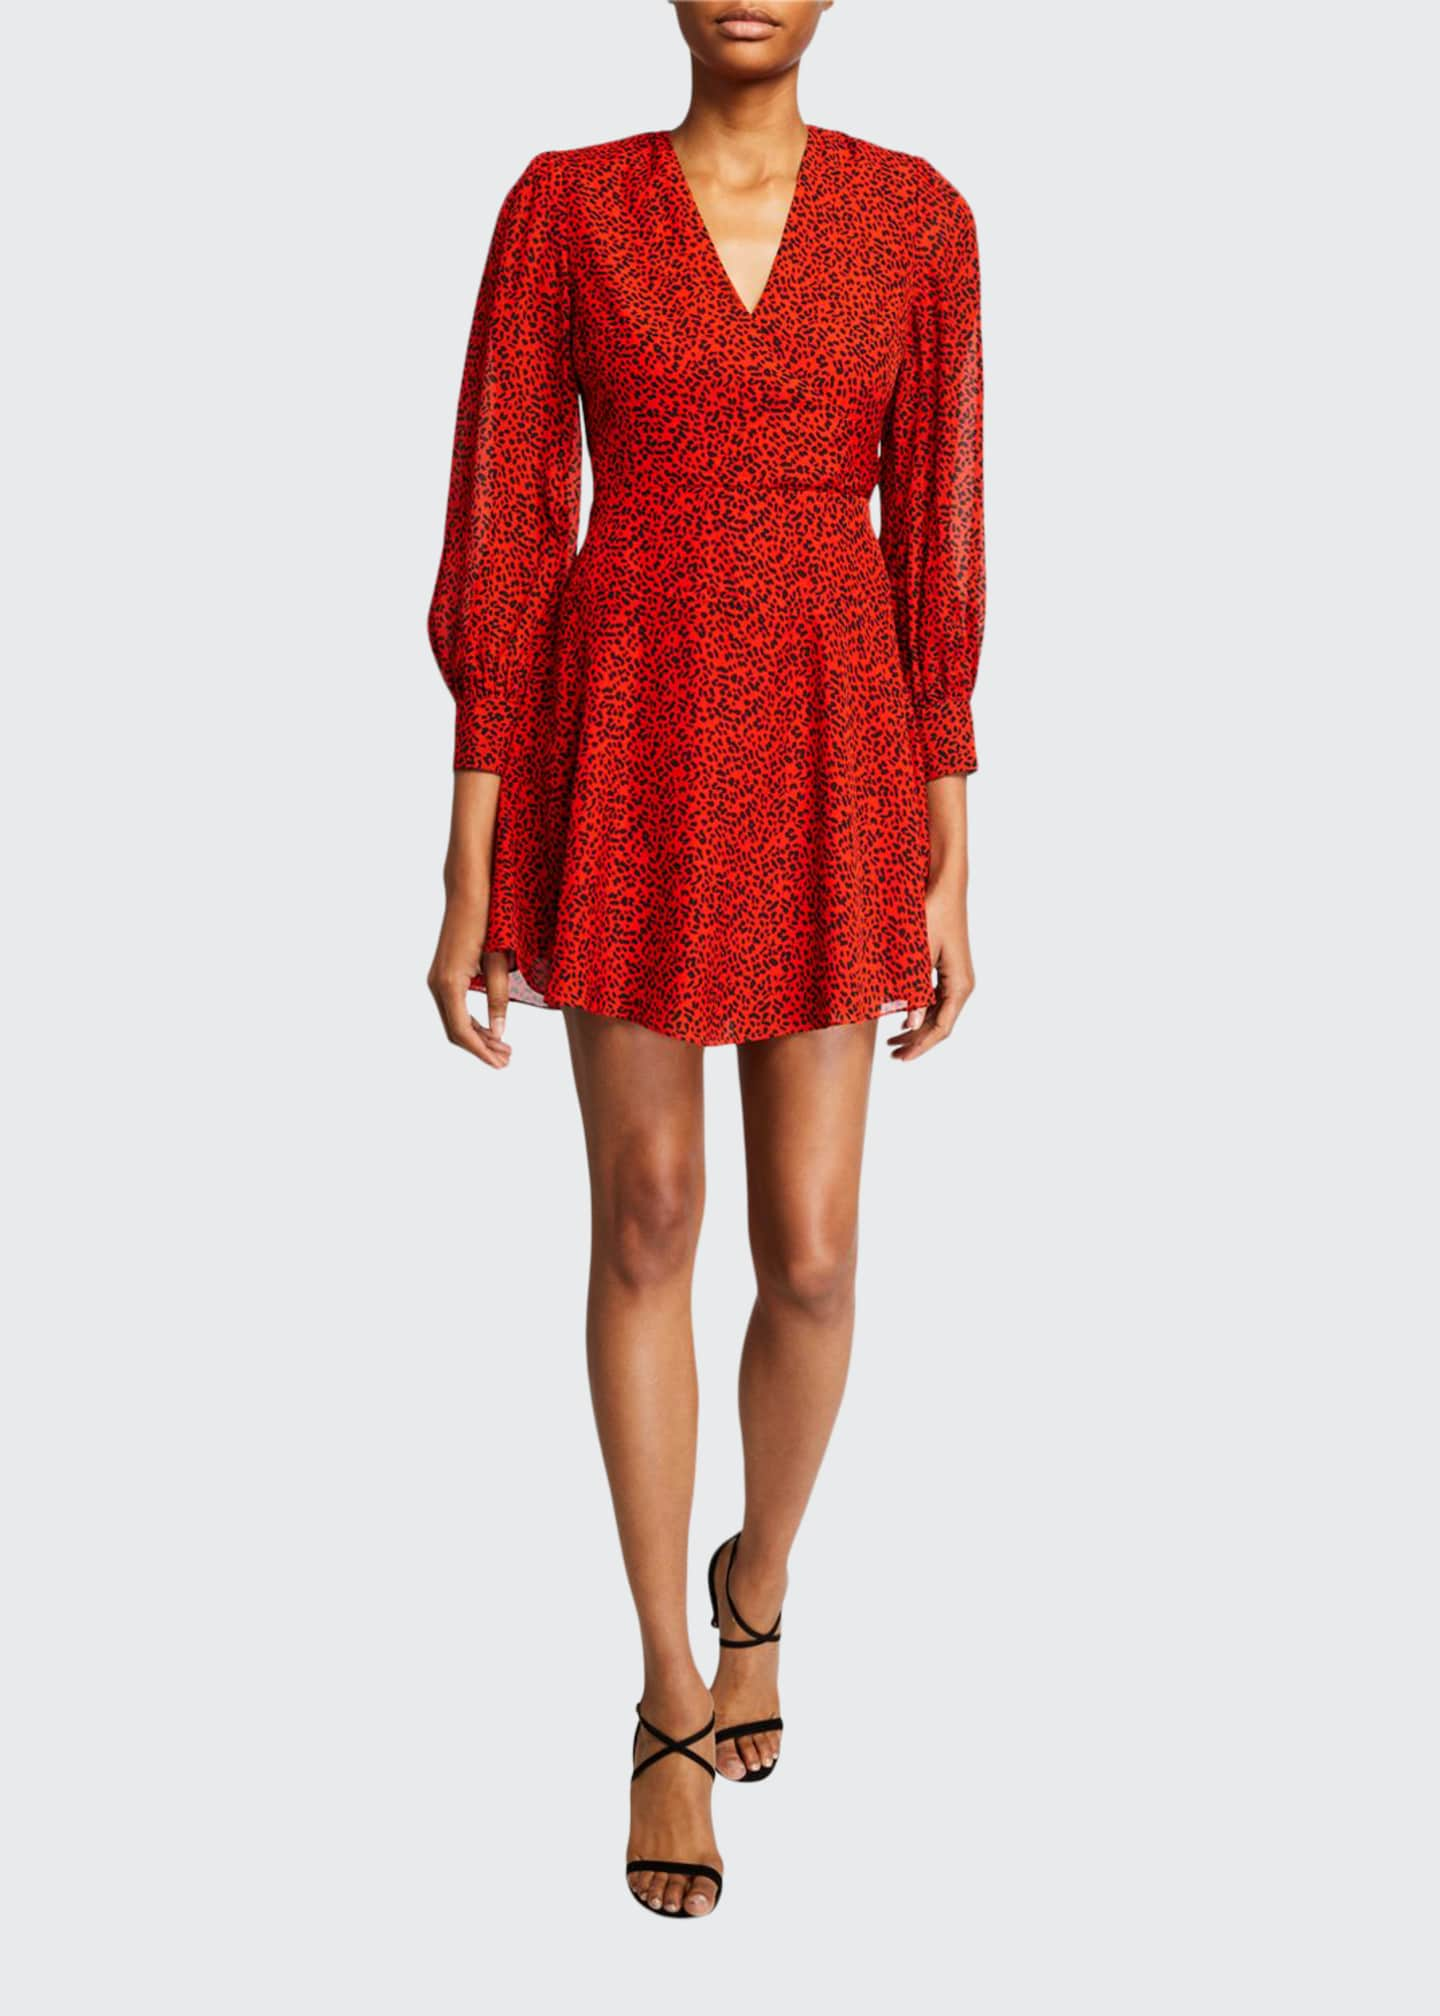 Alice + Olivia Polly Animal-Print Strong-Shoulder Dress